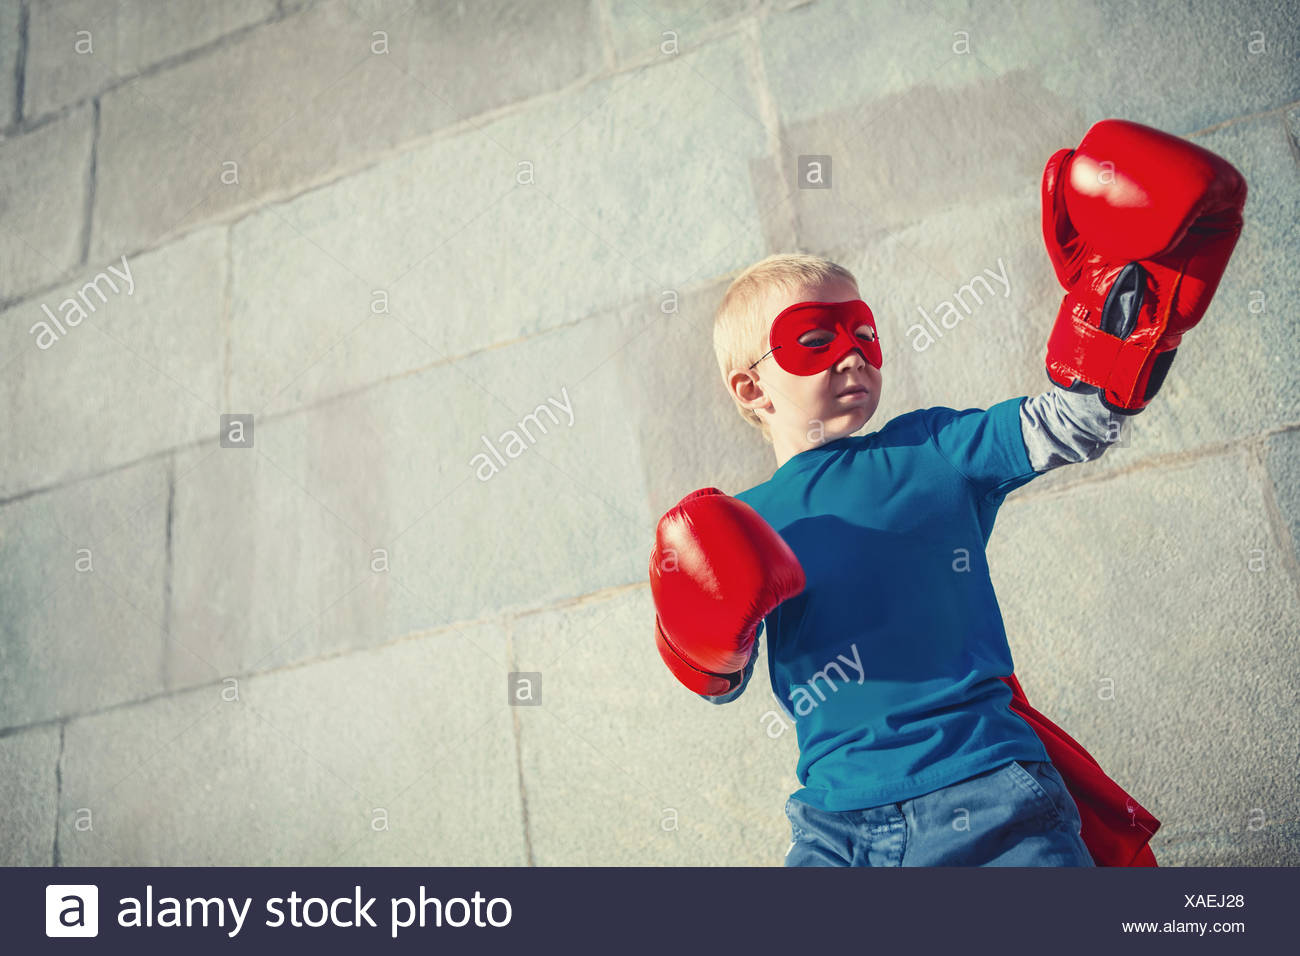 Boy with boxing gloves - Stock Image